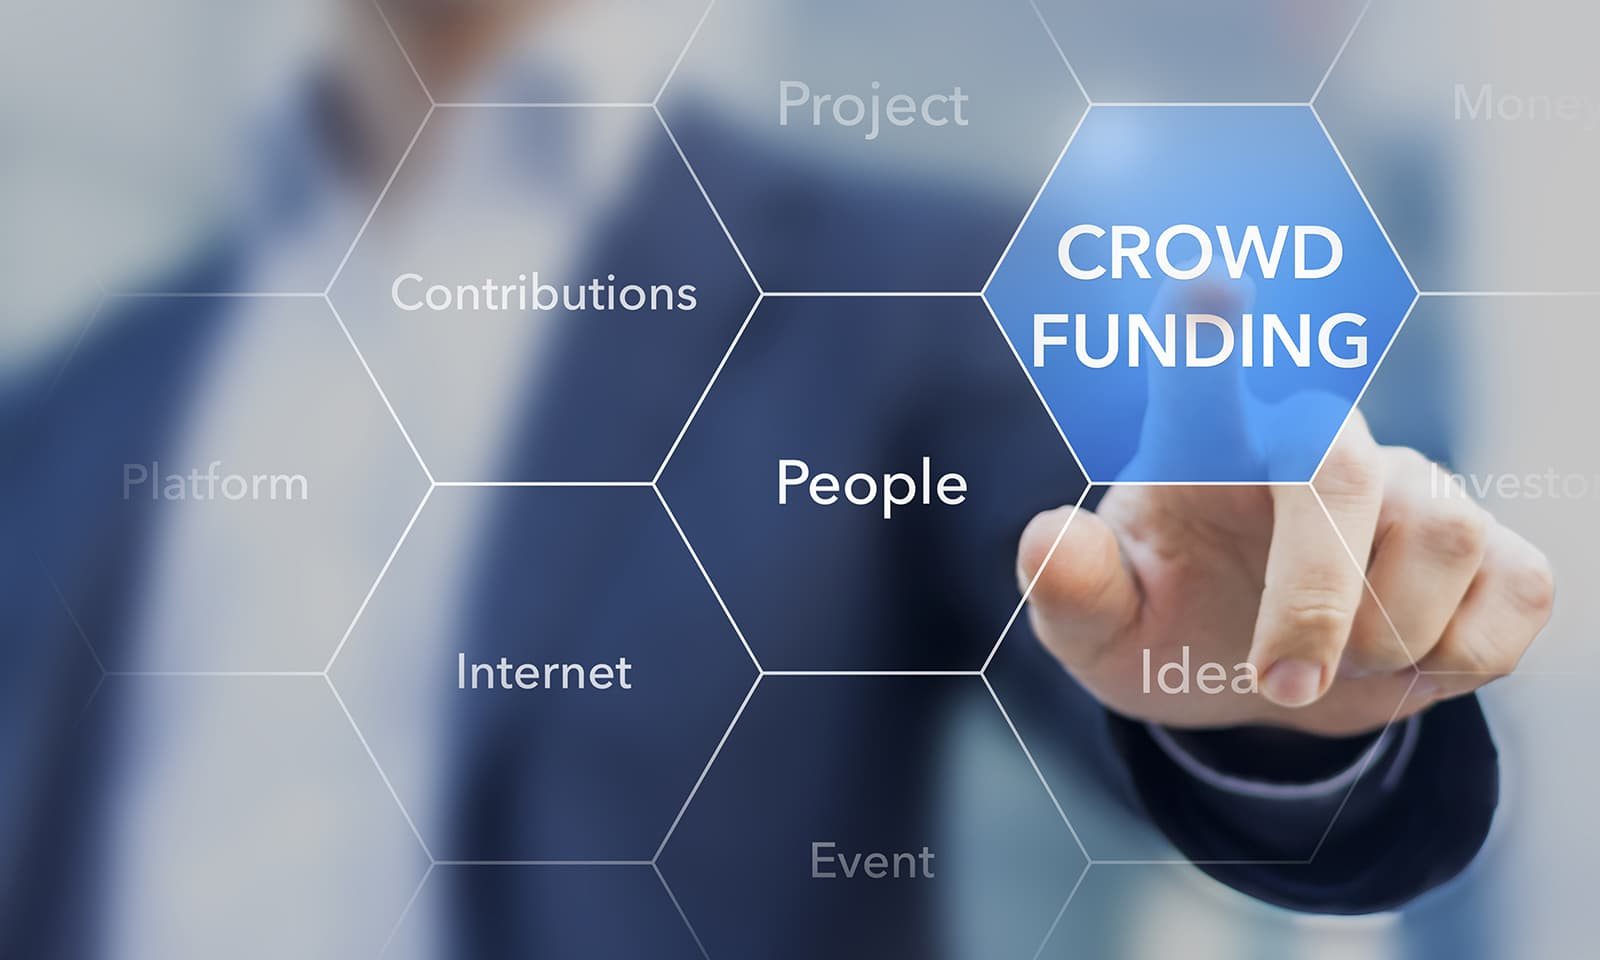 Crowd funding is a successful concept for starting projects star